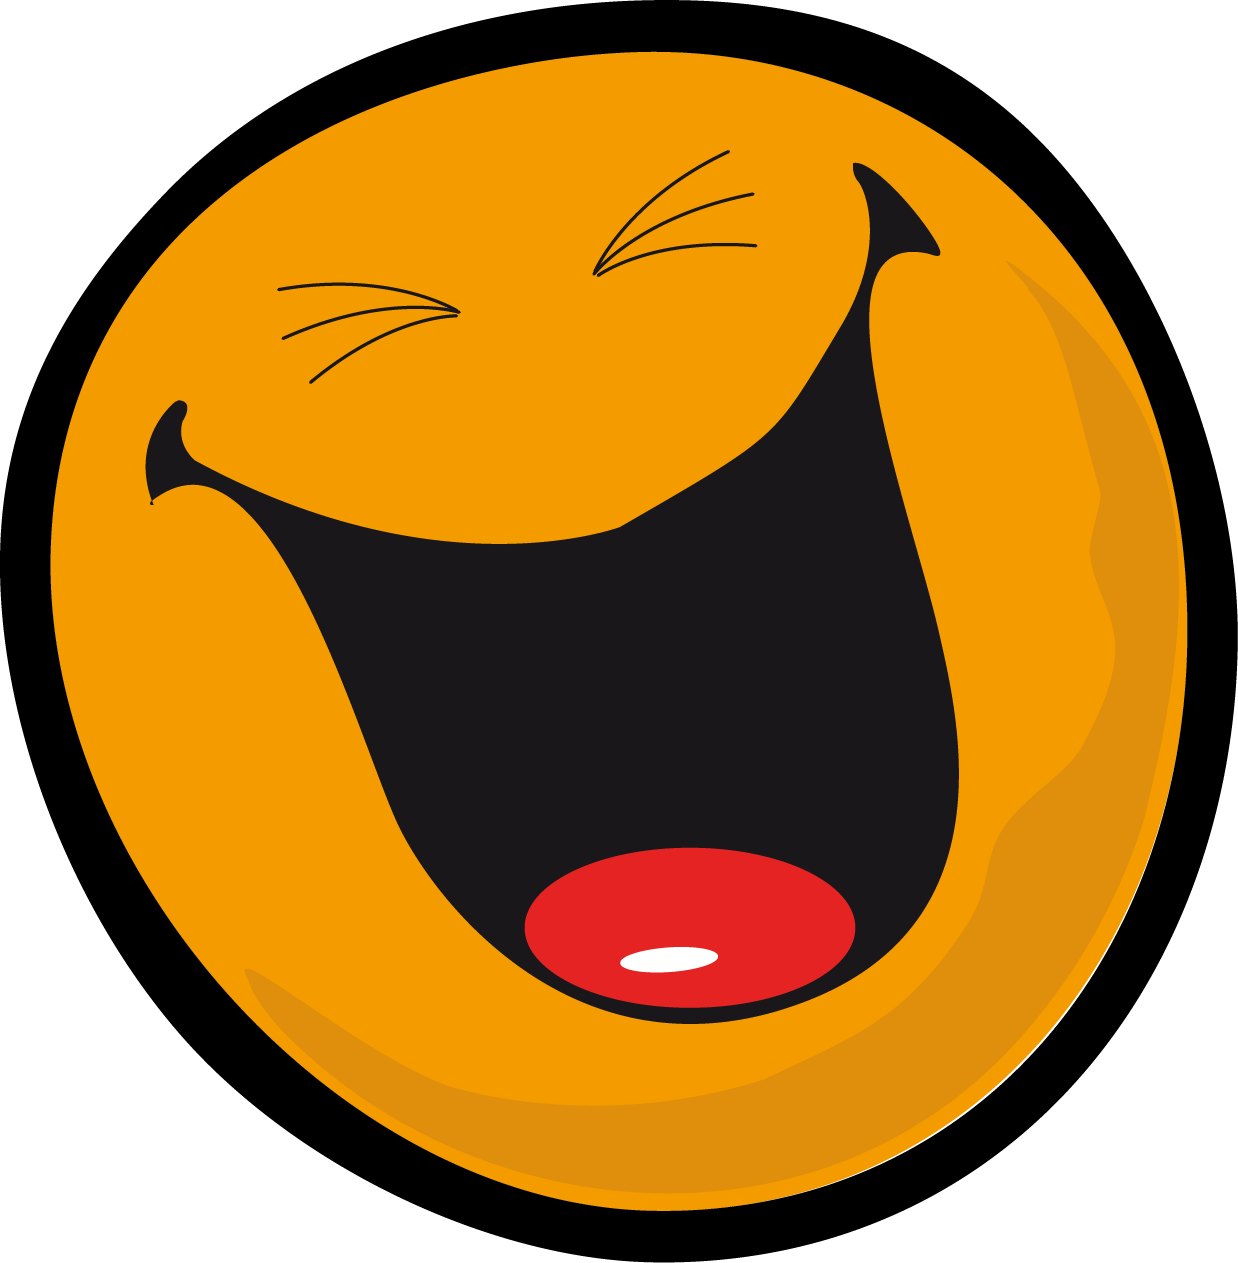 smiley-face-laugh-46.png